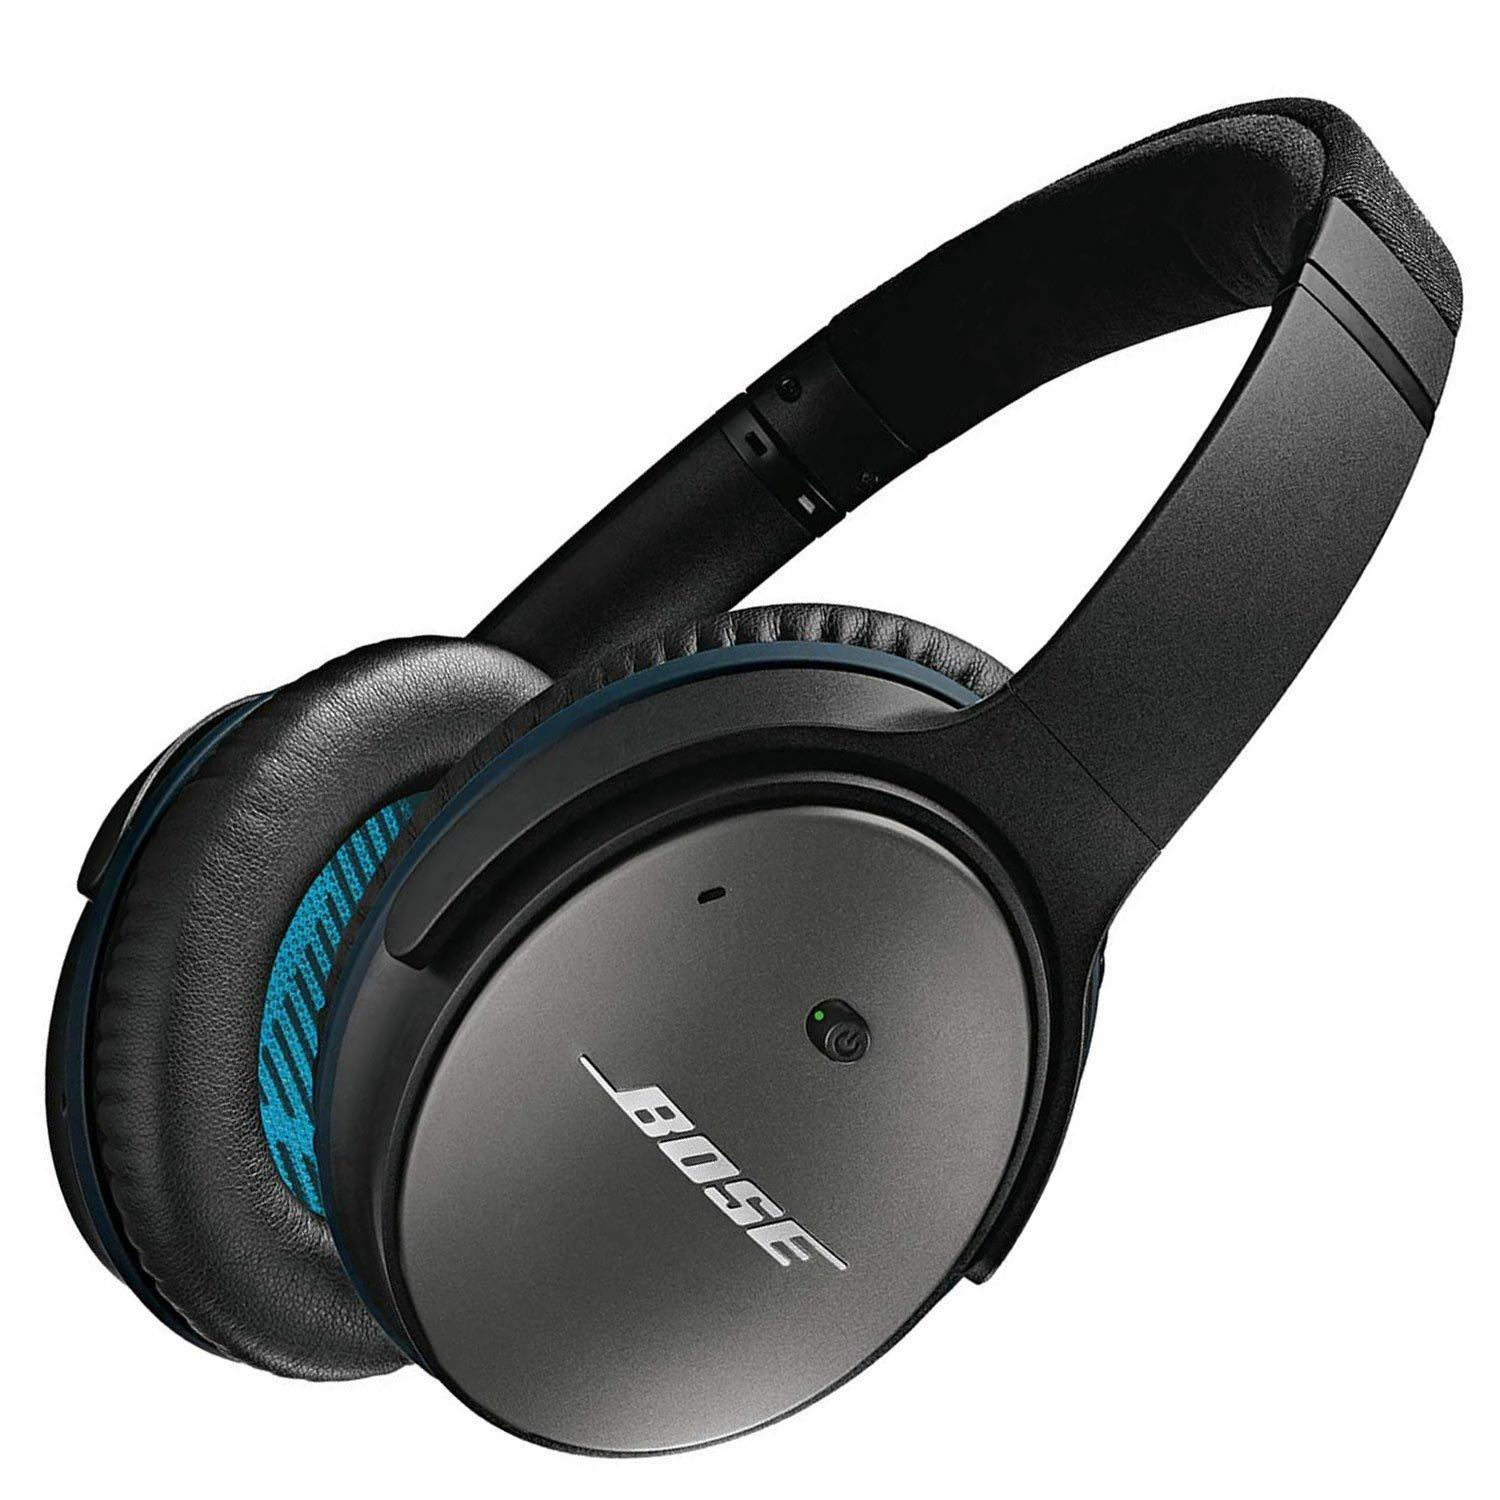 Bose QuietComfort 25 Acoustic Noise Cancelling Headphones for Apple devices- Black (Refurbished)